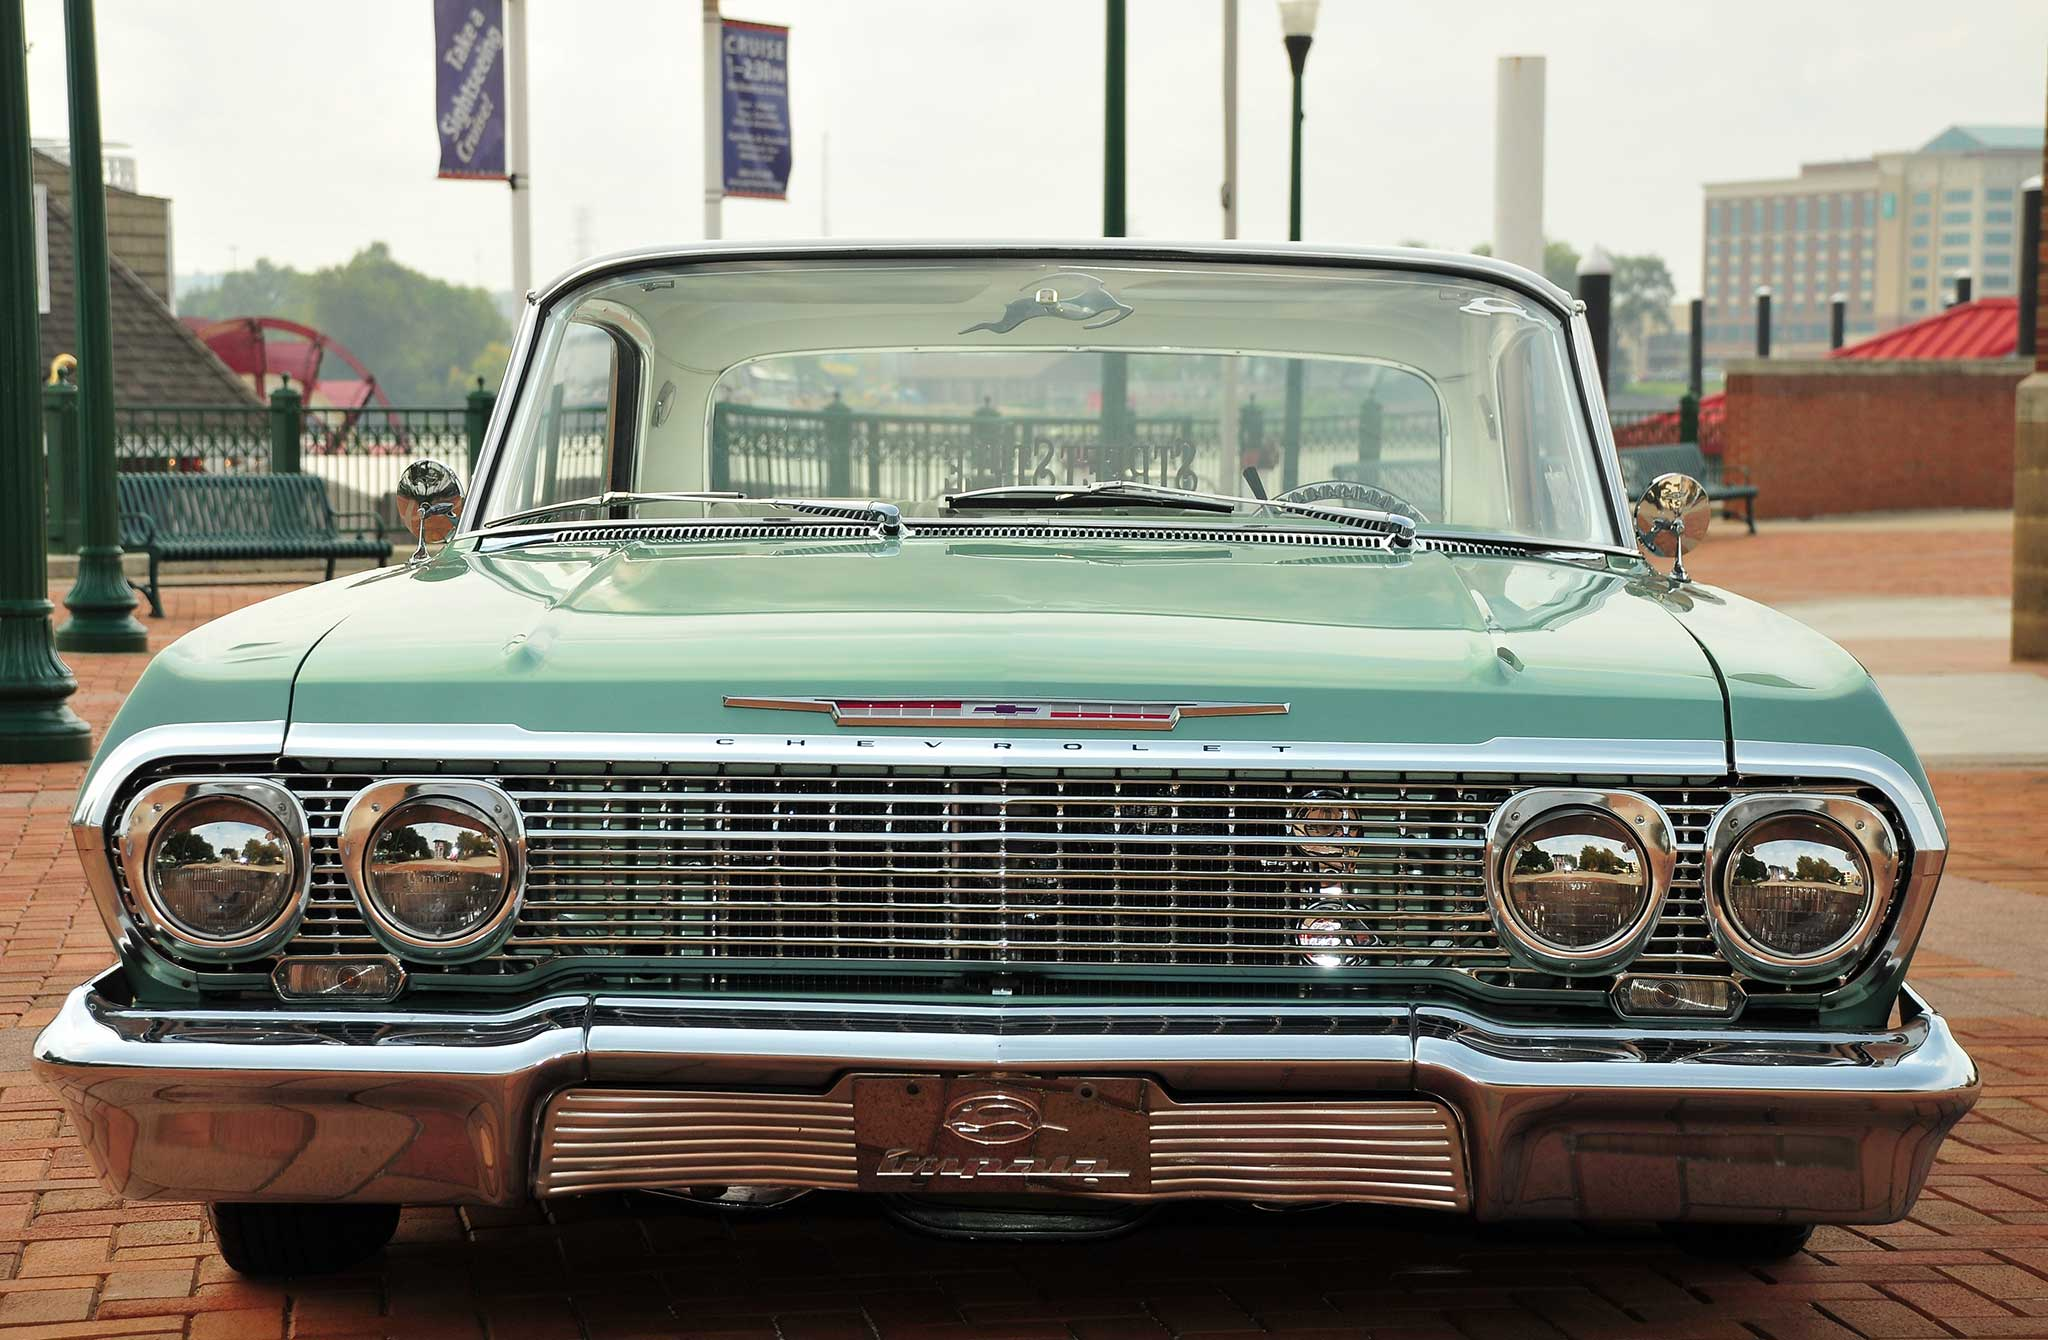 Green Chevy Peoria Il >> 1963 Chevrolet Impala - Deal 'em Up